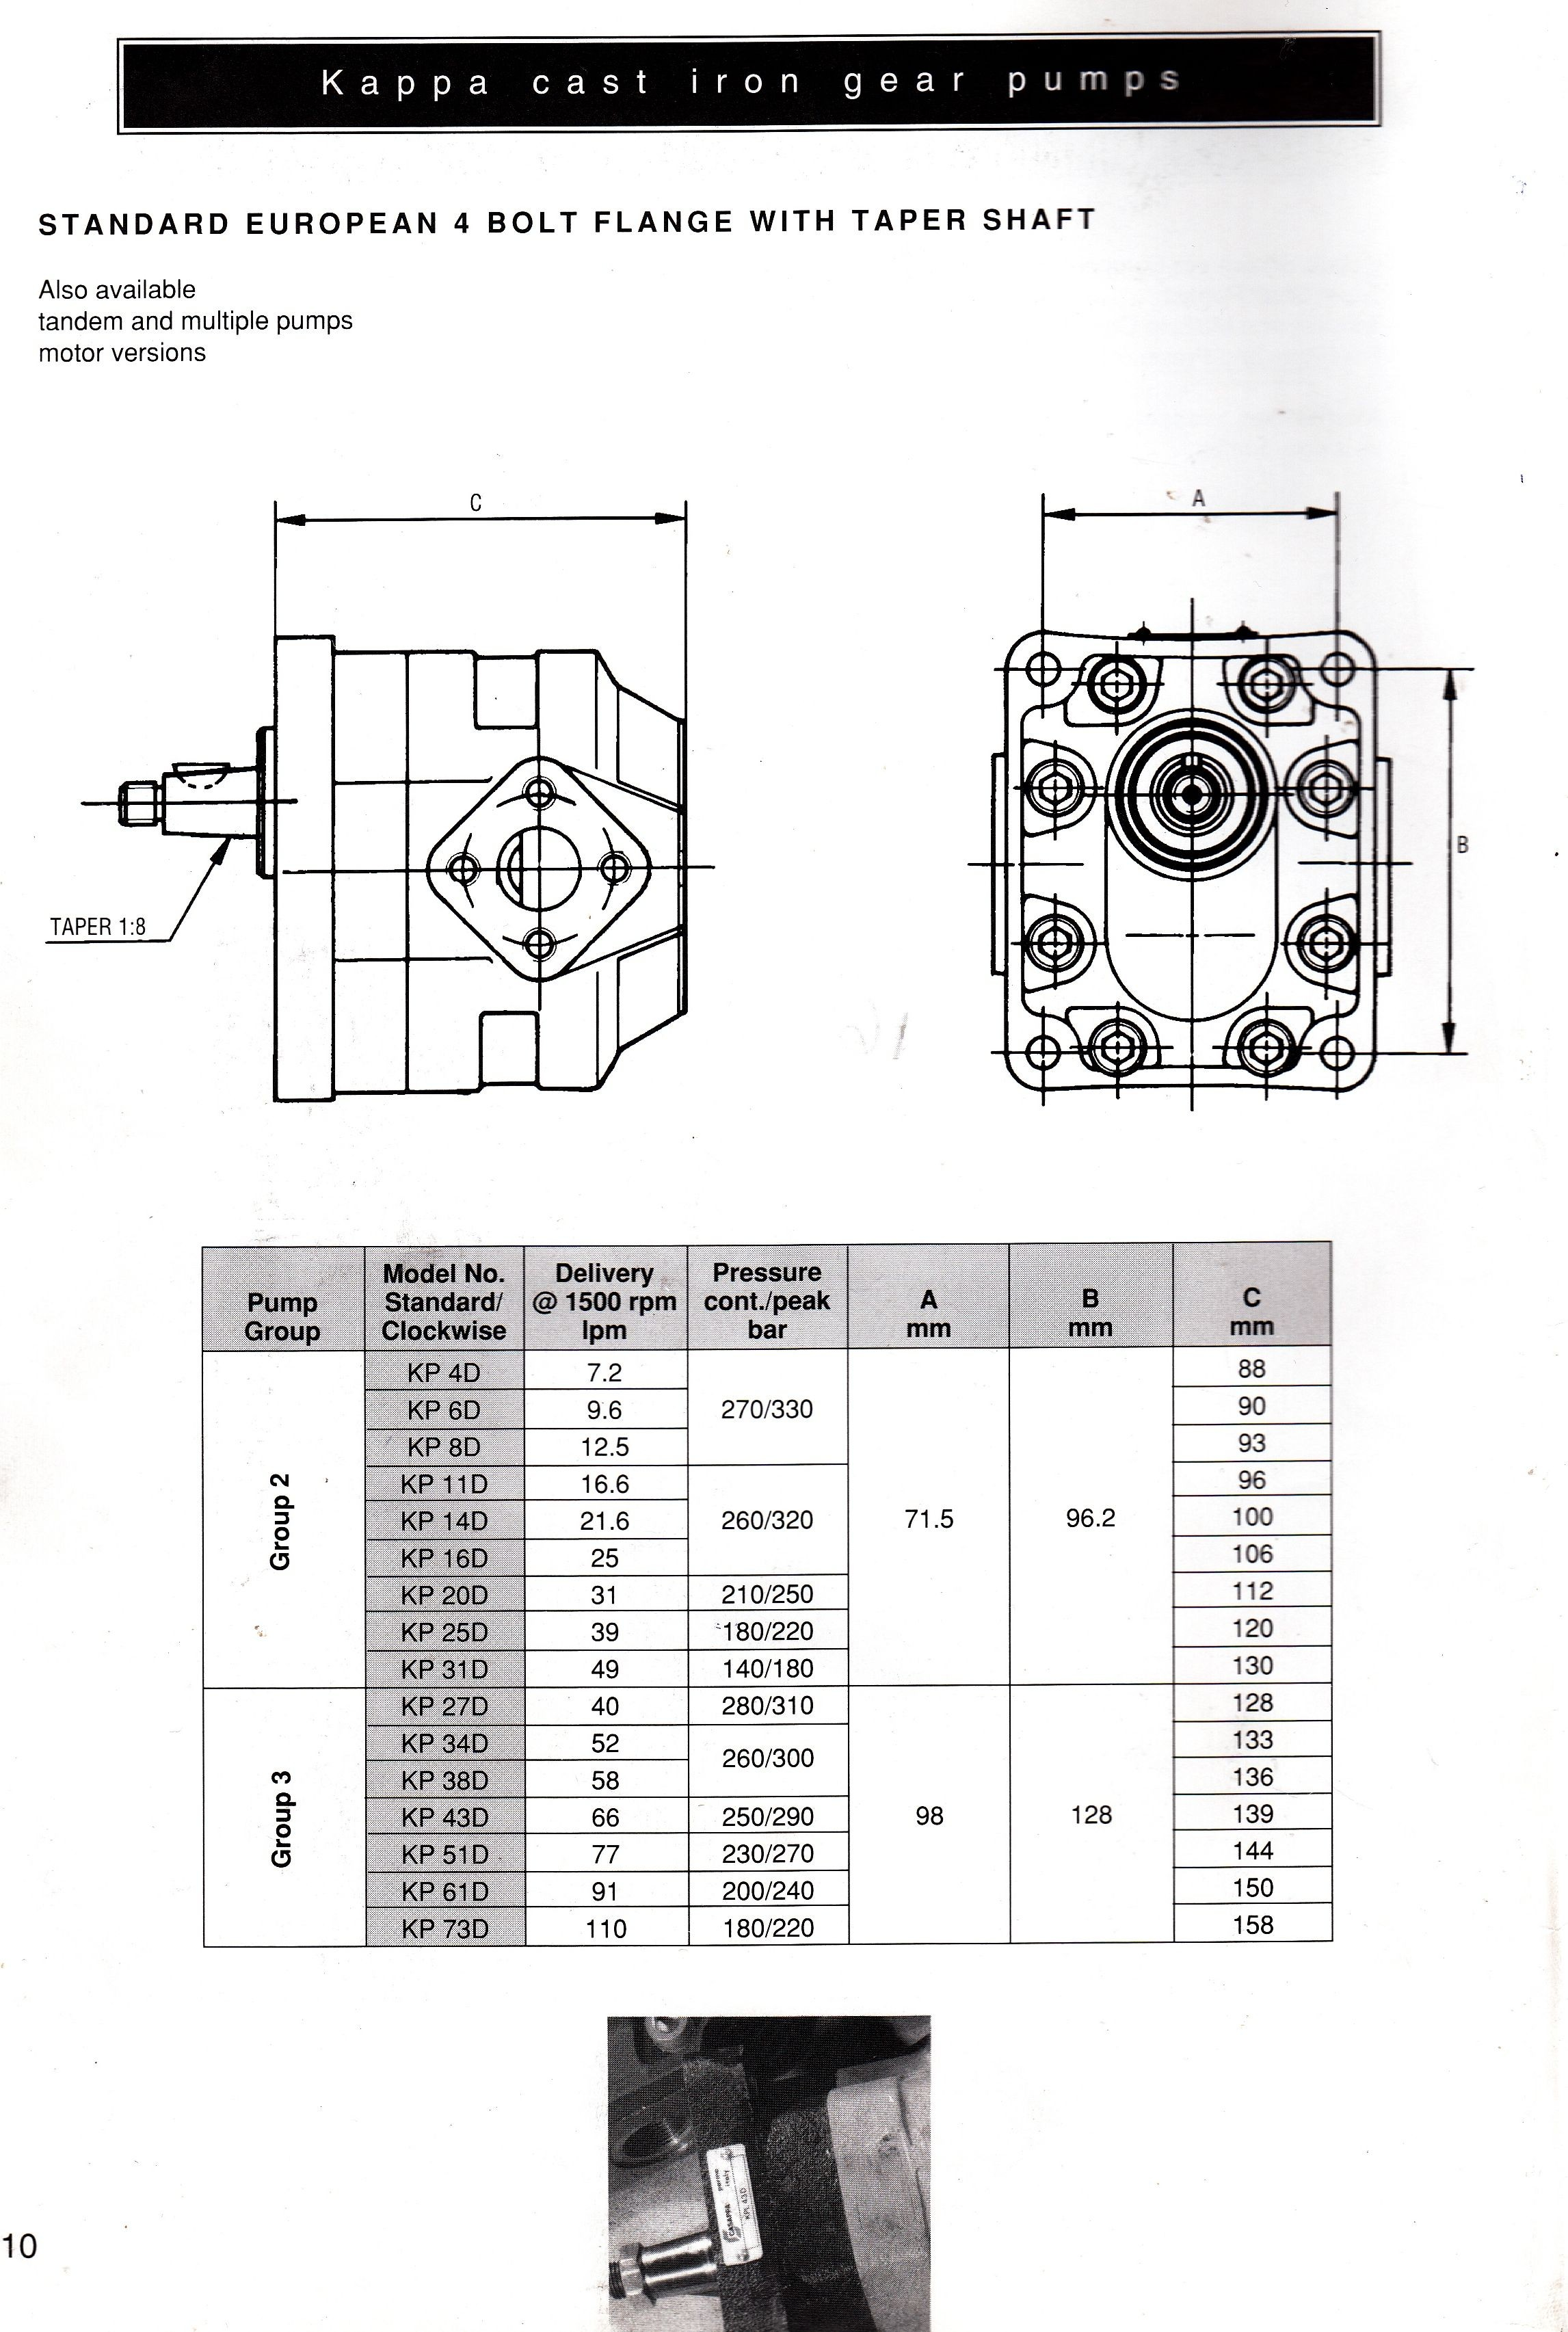 A page a day from the truly useful Universal Hydraulic Equipment catalogue This morning page